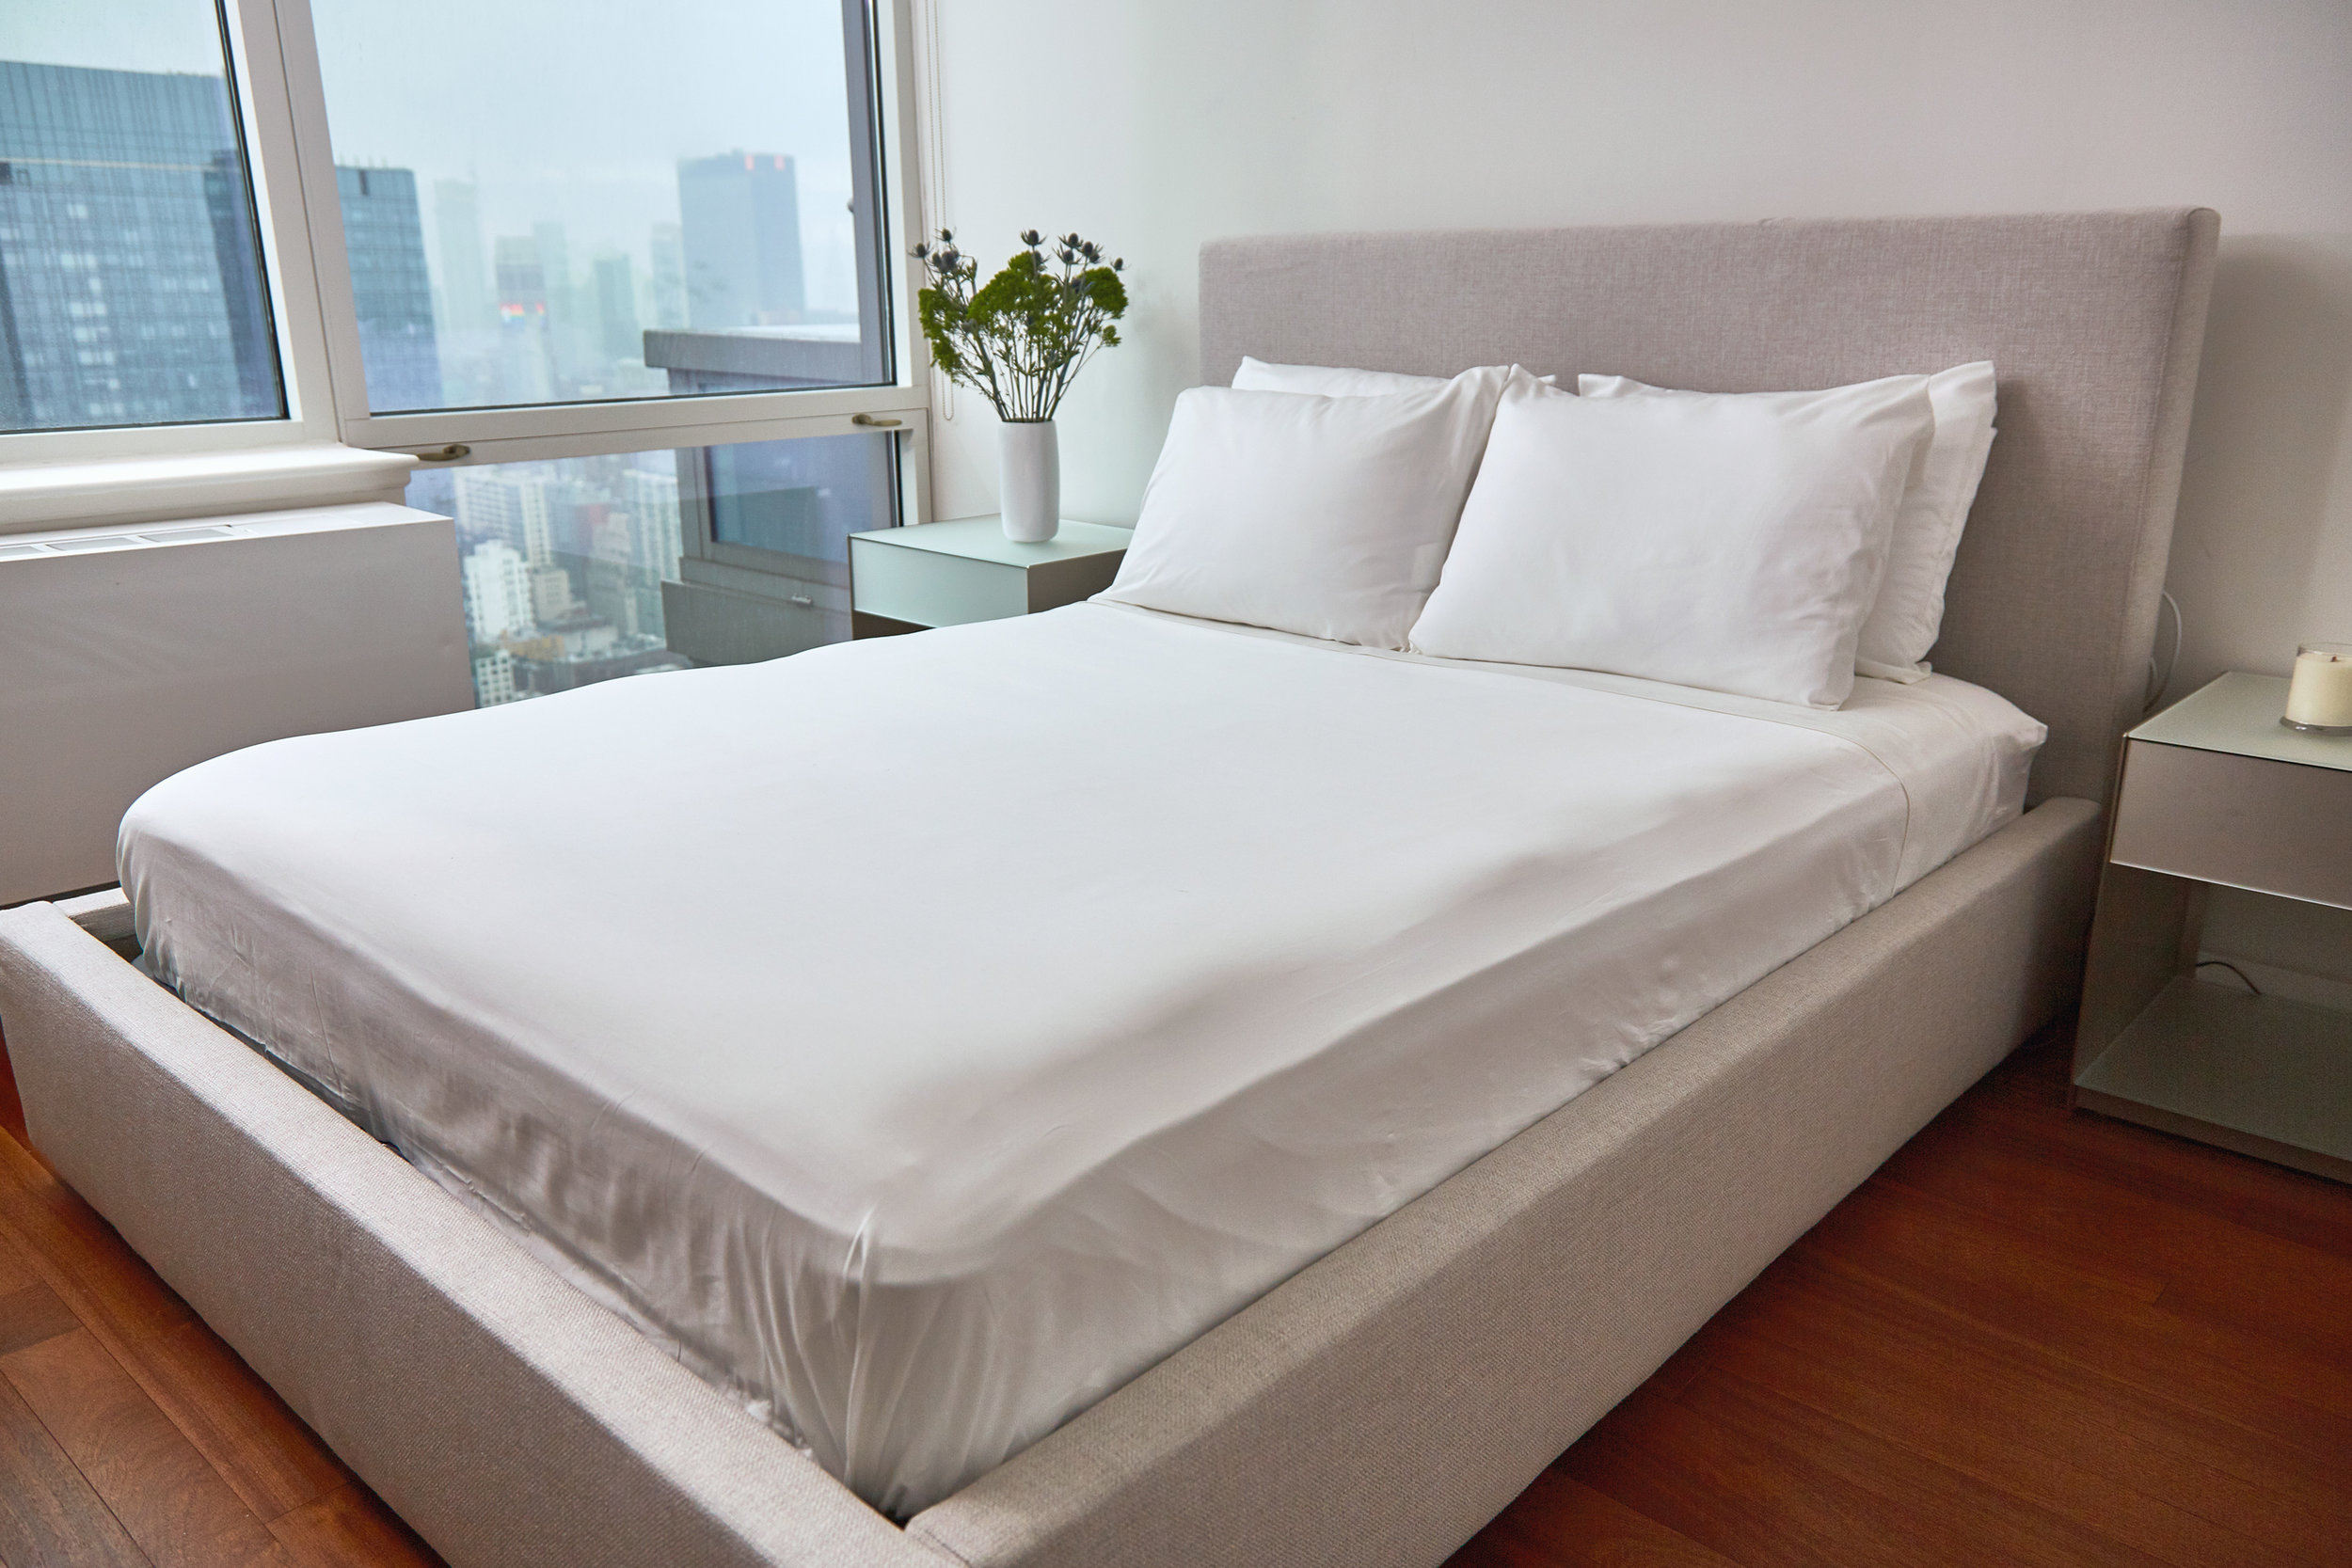 UN_FARM_TO_HOME_BED_SHEETS_WHITE1088_XRET.jpg